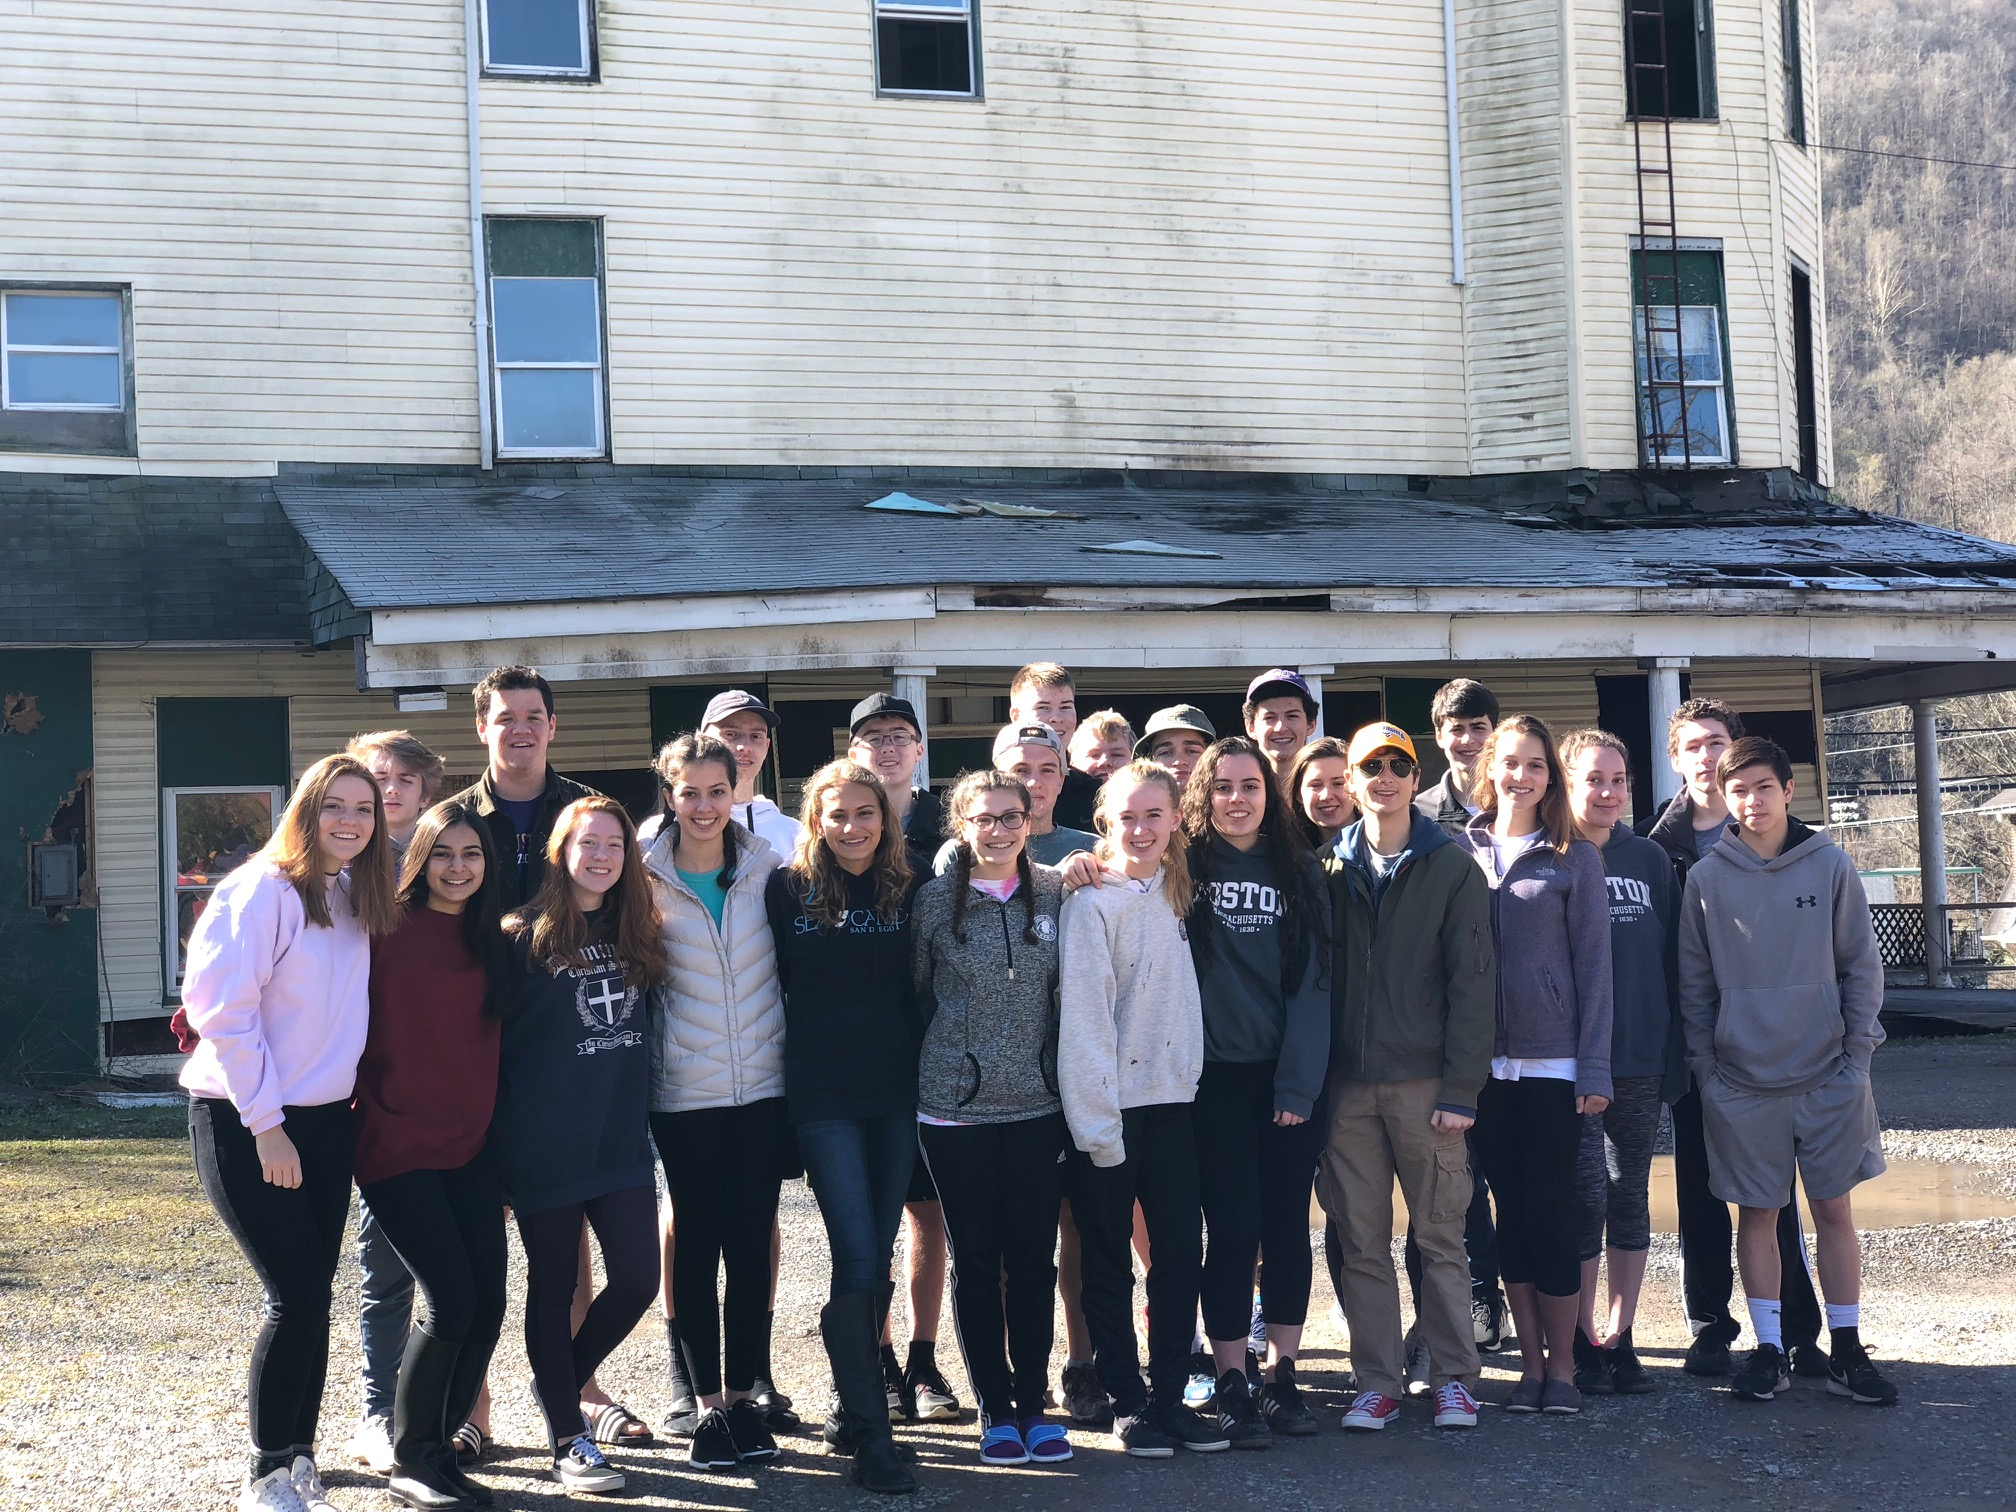 Upper school students serve the community at Dominion Christian School, a K-12 classical Christian school, with campuses in Oakton, Reston and Potomac Falls, Virginia.